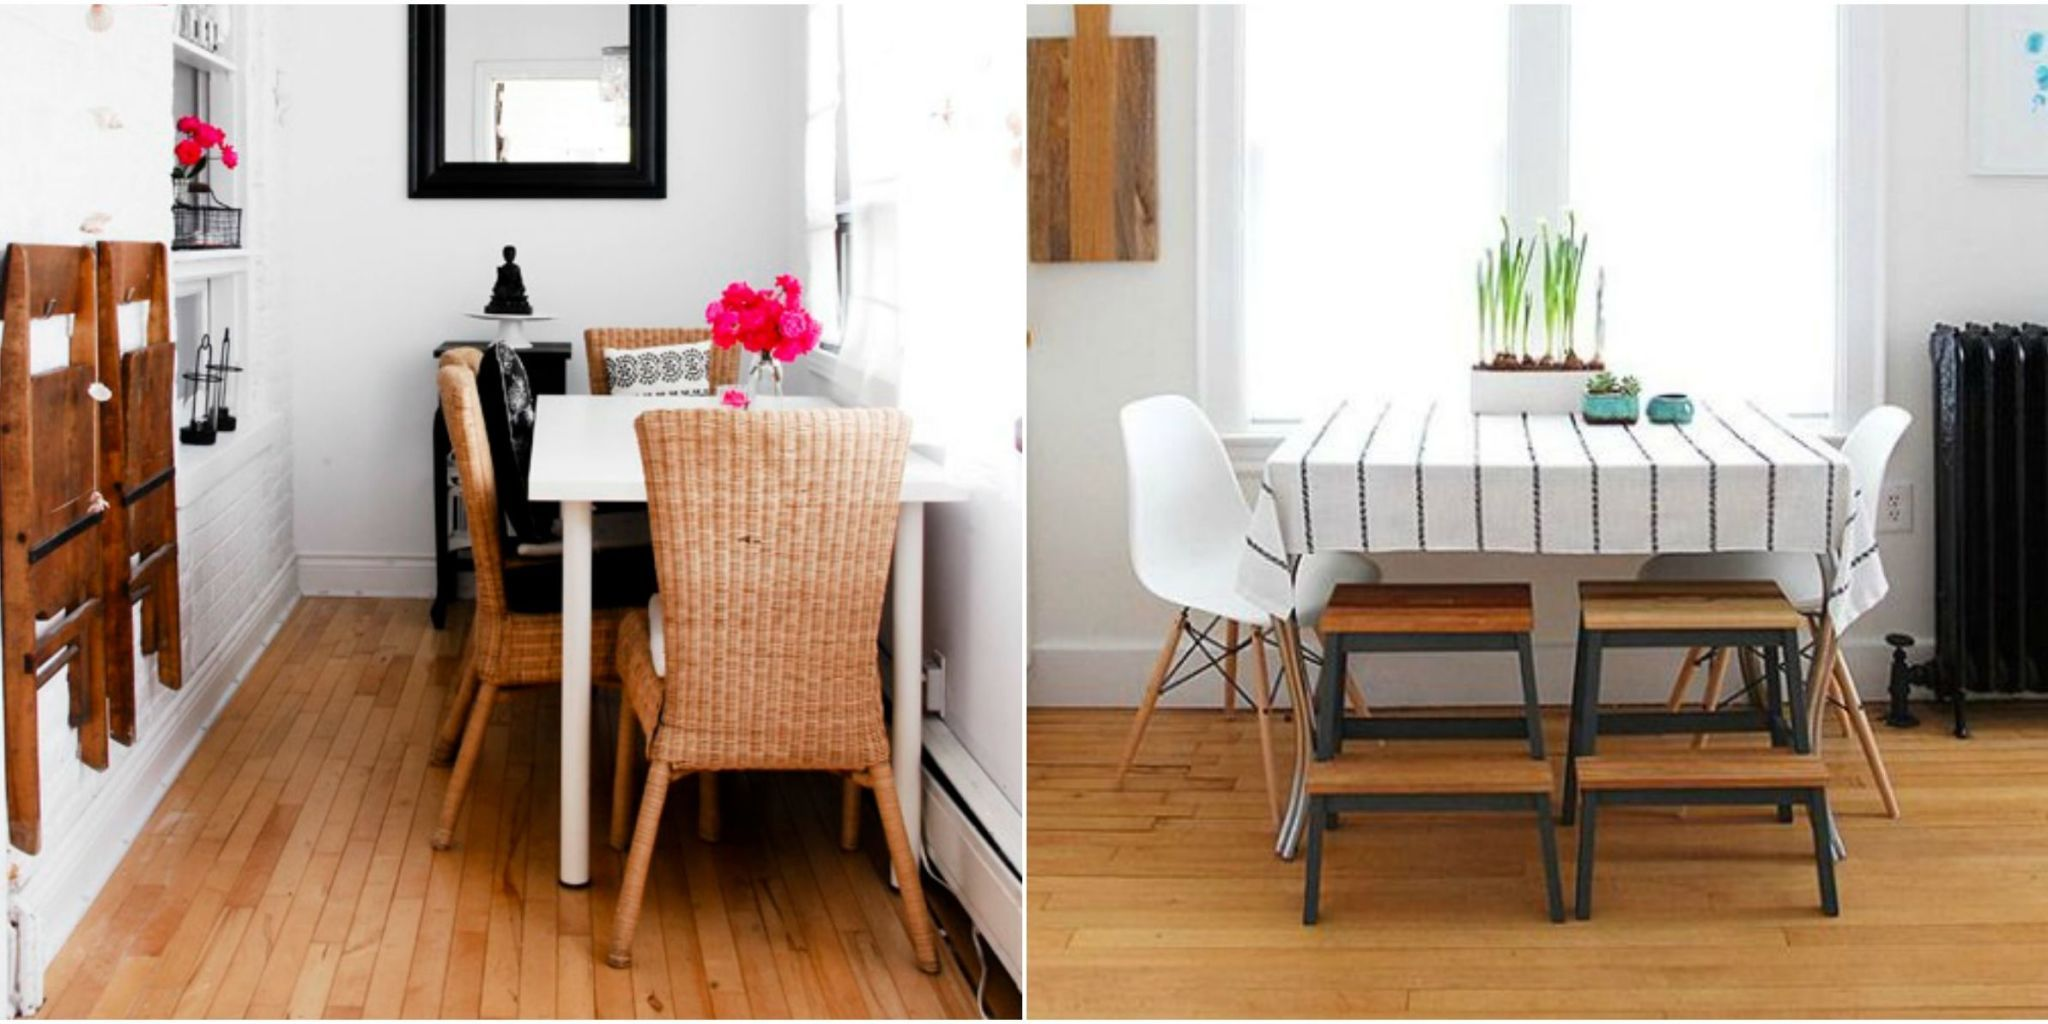 Small Space Seating Tricks How To Add More Seating To Tiny Homes